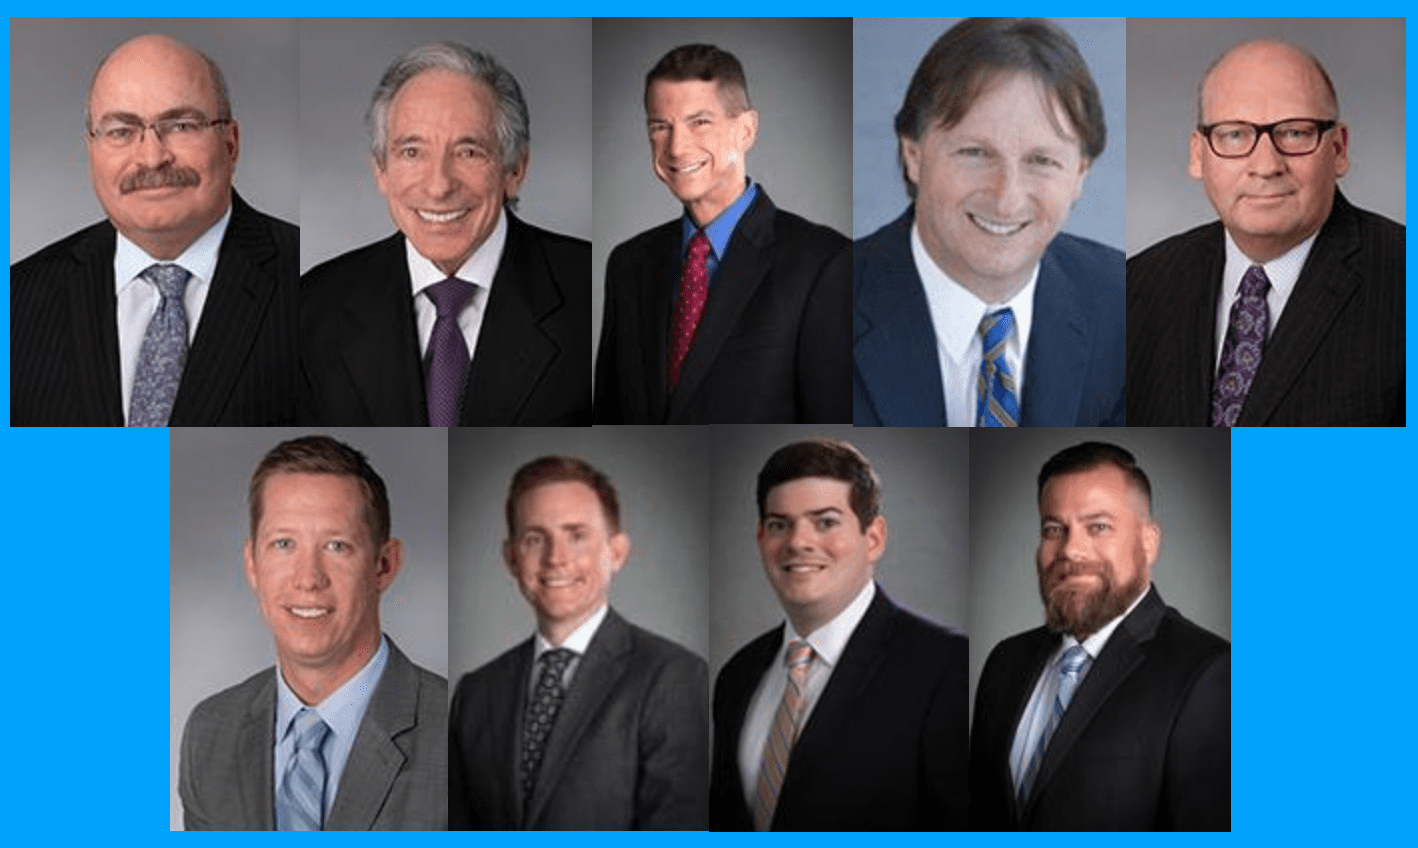 Top left to right: McKeen, Rosen, Dawes, Tirella & Counsman; bottom left to right: Kay, Lee, Malone & Proulx. Image courtesy McKeen & Associates.